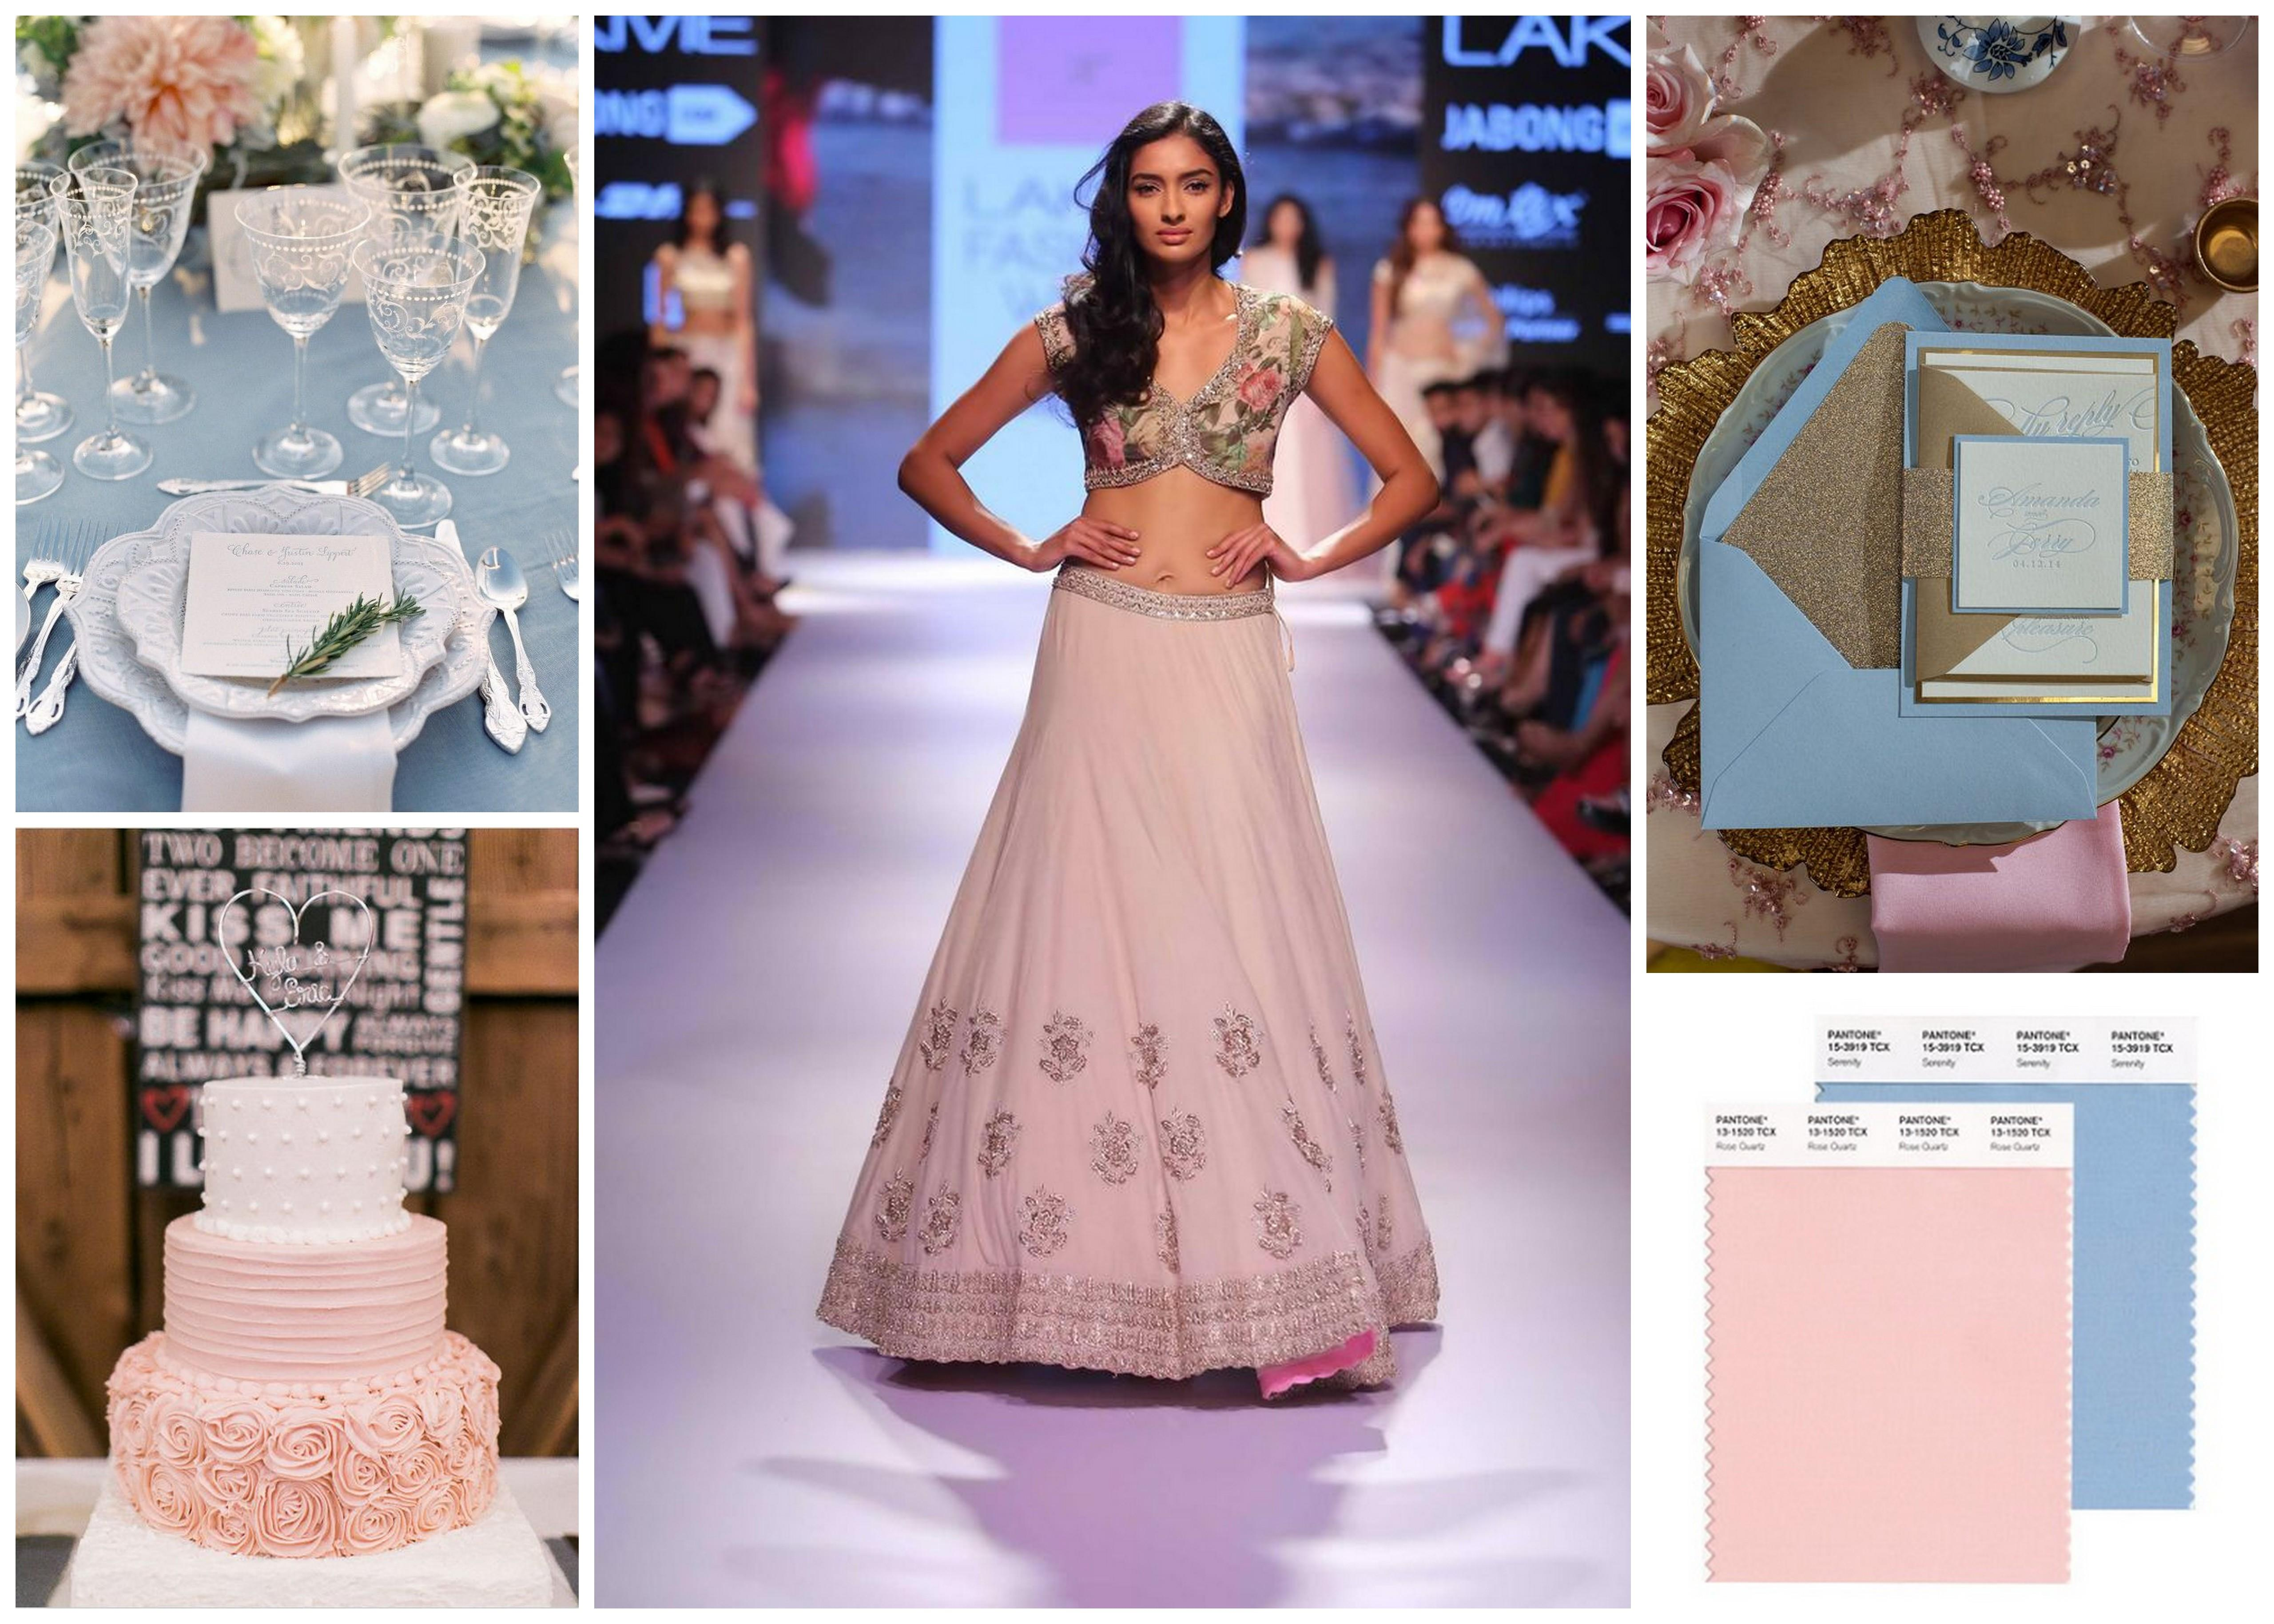 Pantone crowns Rose Quartz and Serenity As Their 2016 Colors of the Year